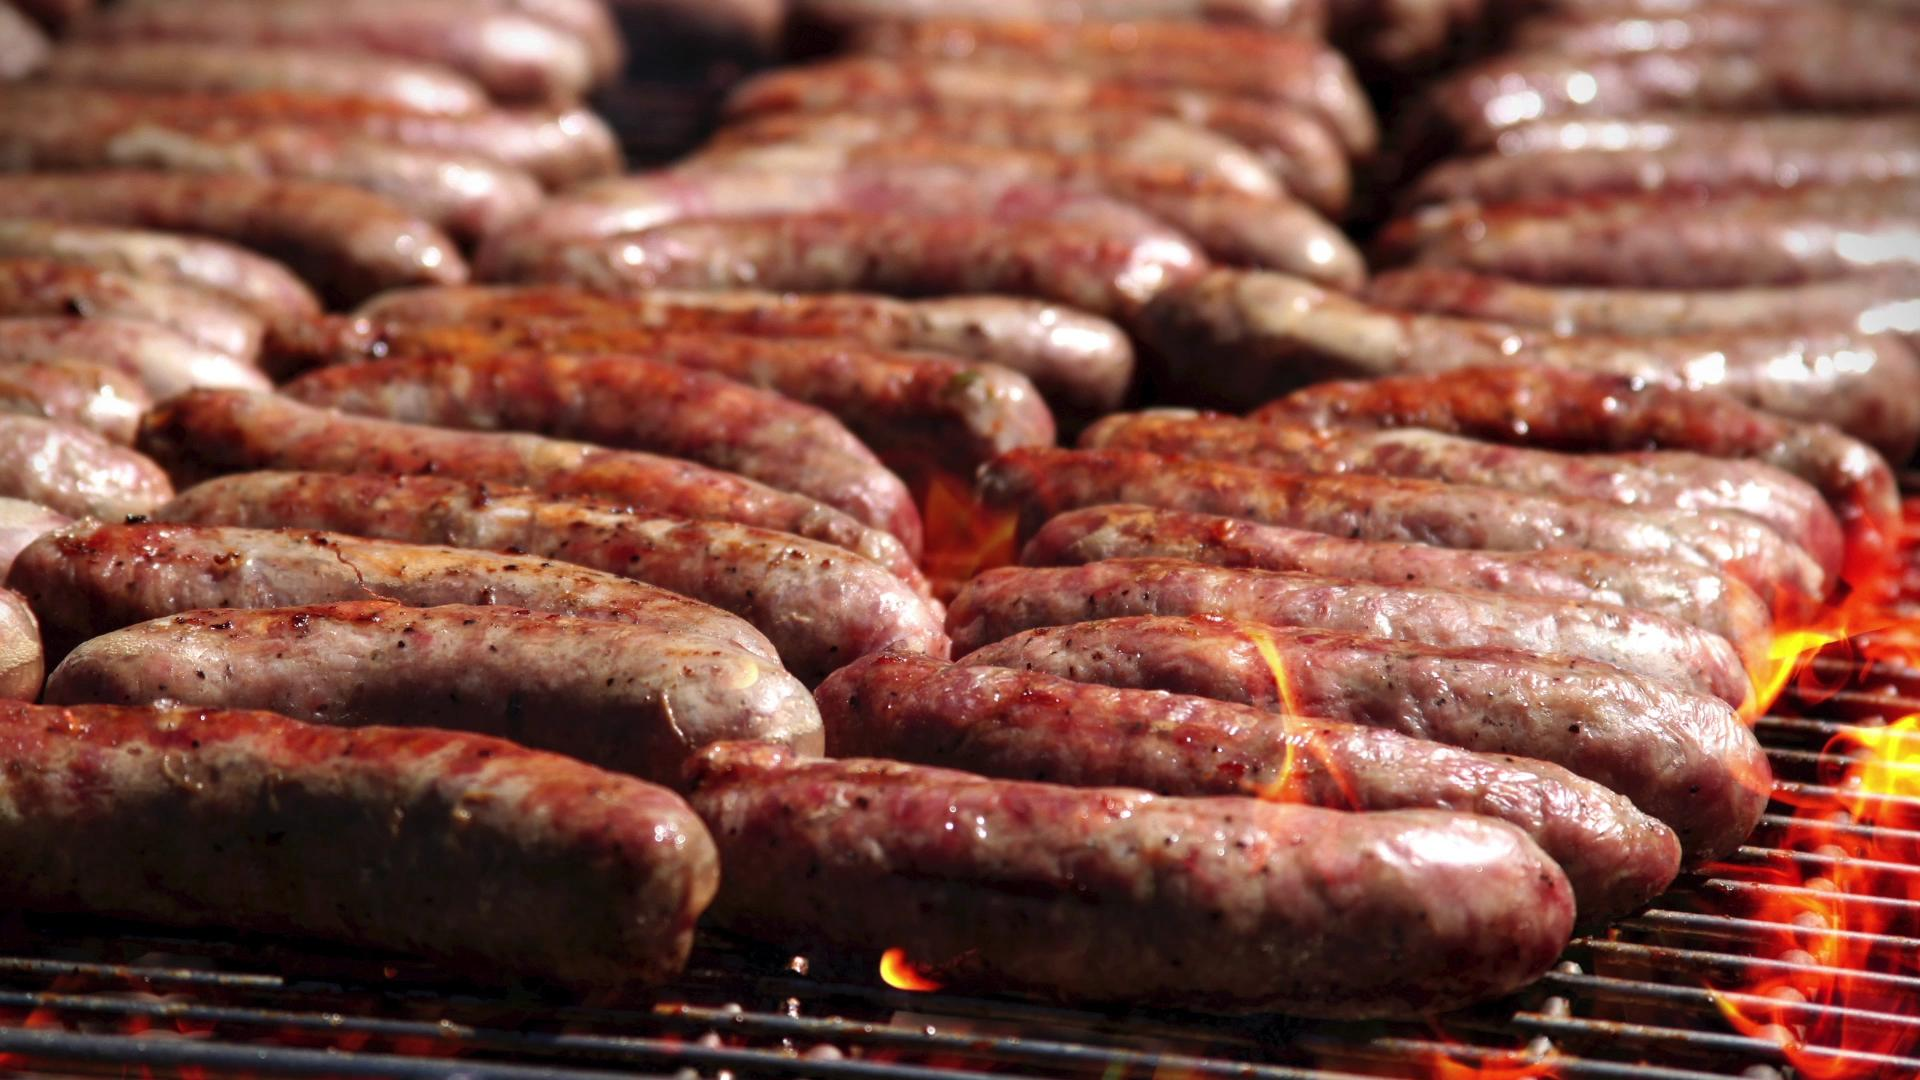 Man named Bacon arrested for fight over sausage